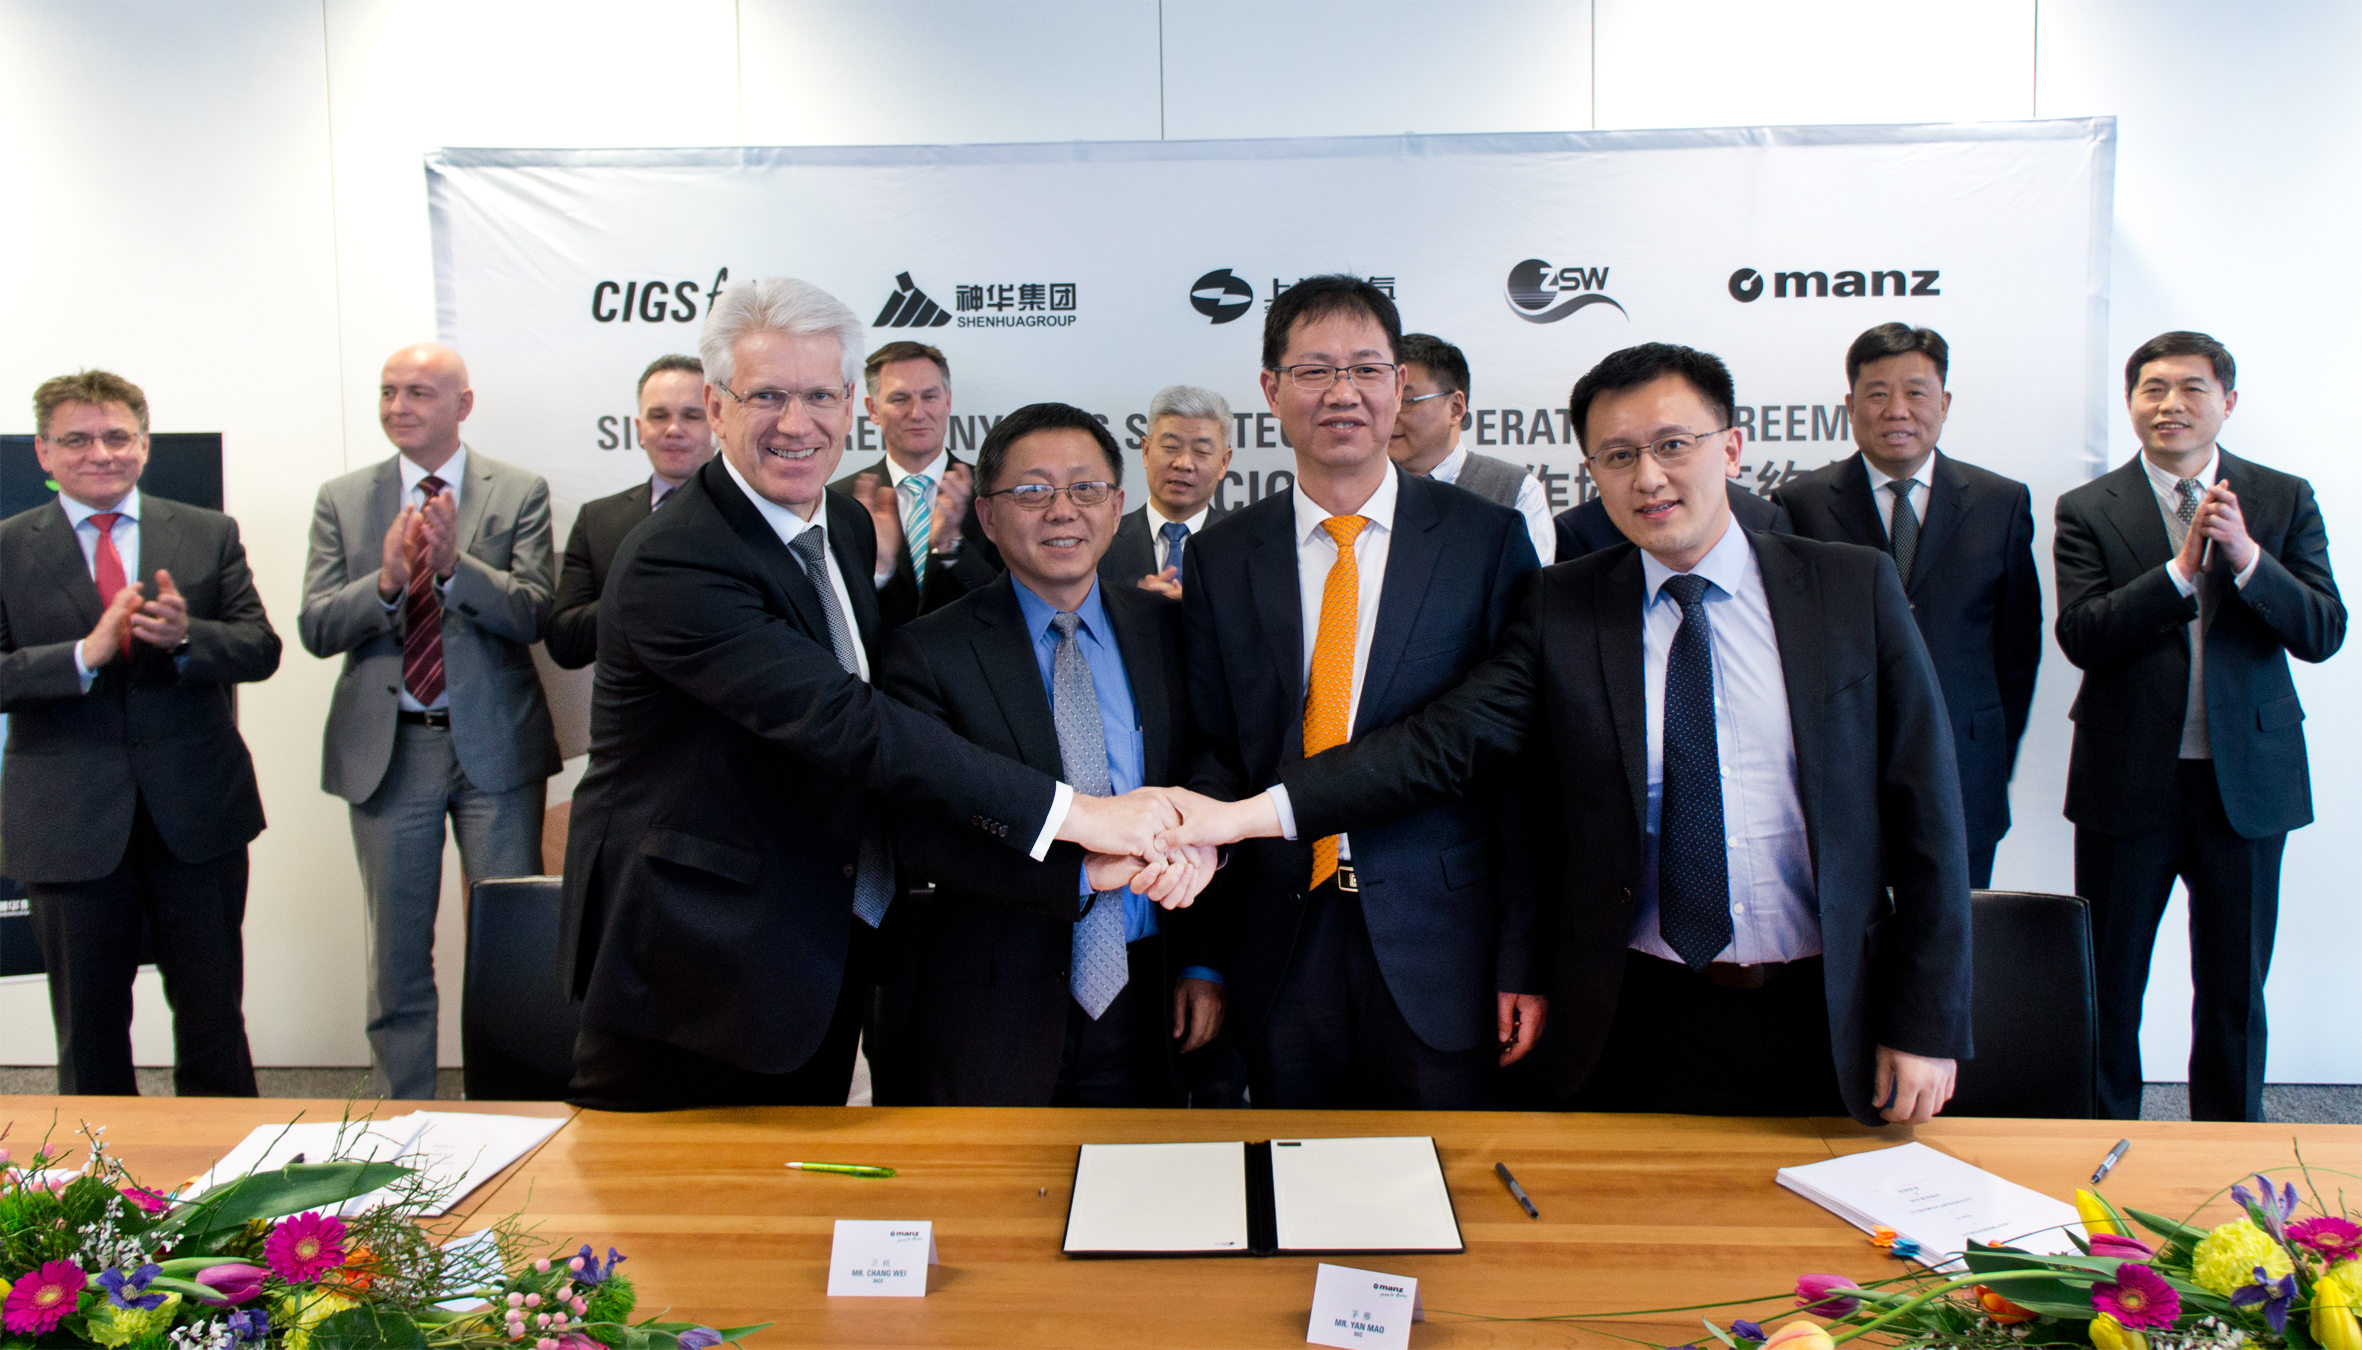 Manz said that the orders amounted to €263 million (US$282.22 million), which included a CIGS production line with a capacity of 306MW and another one for a CIGS R&D line with a nameplate capacity of 44MW. Image: Manz AG